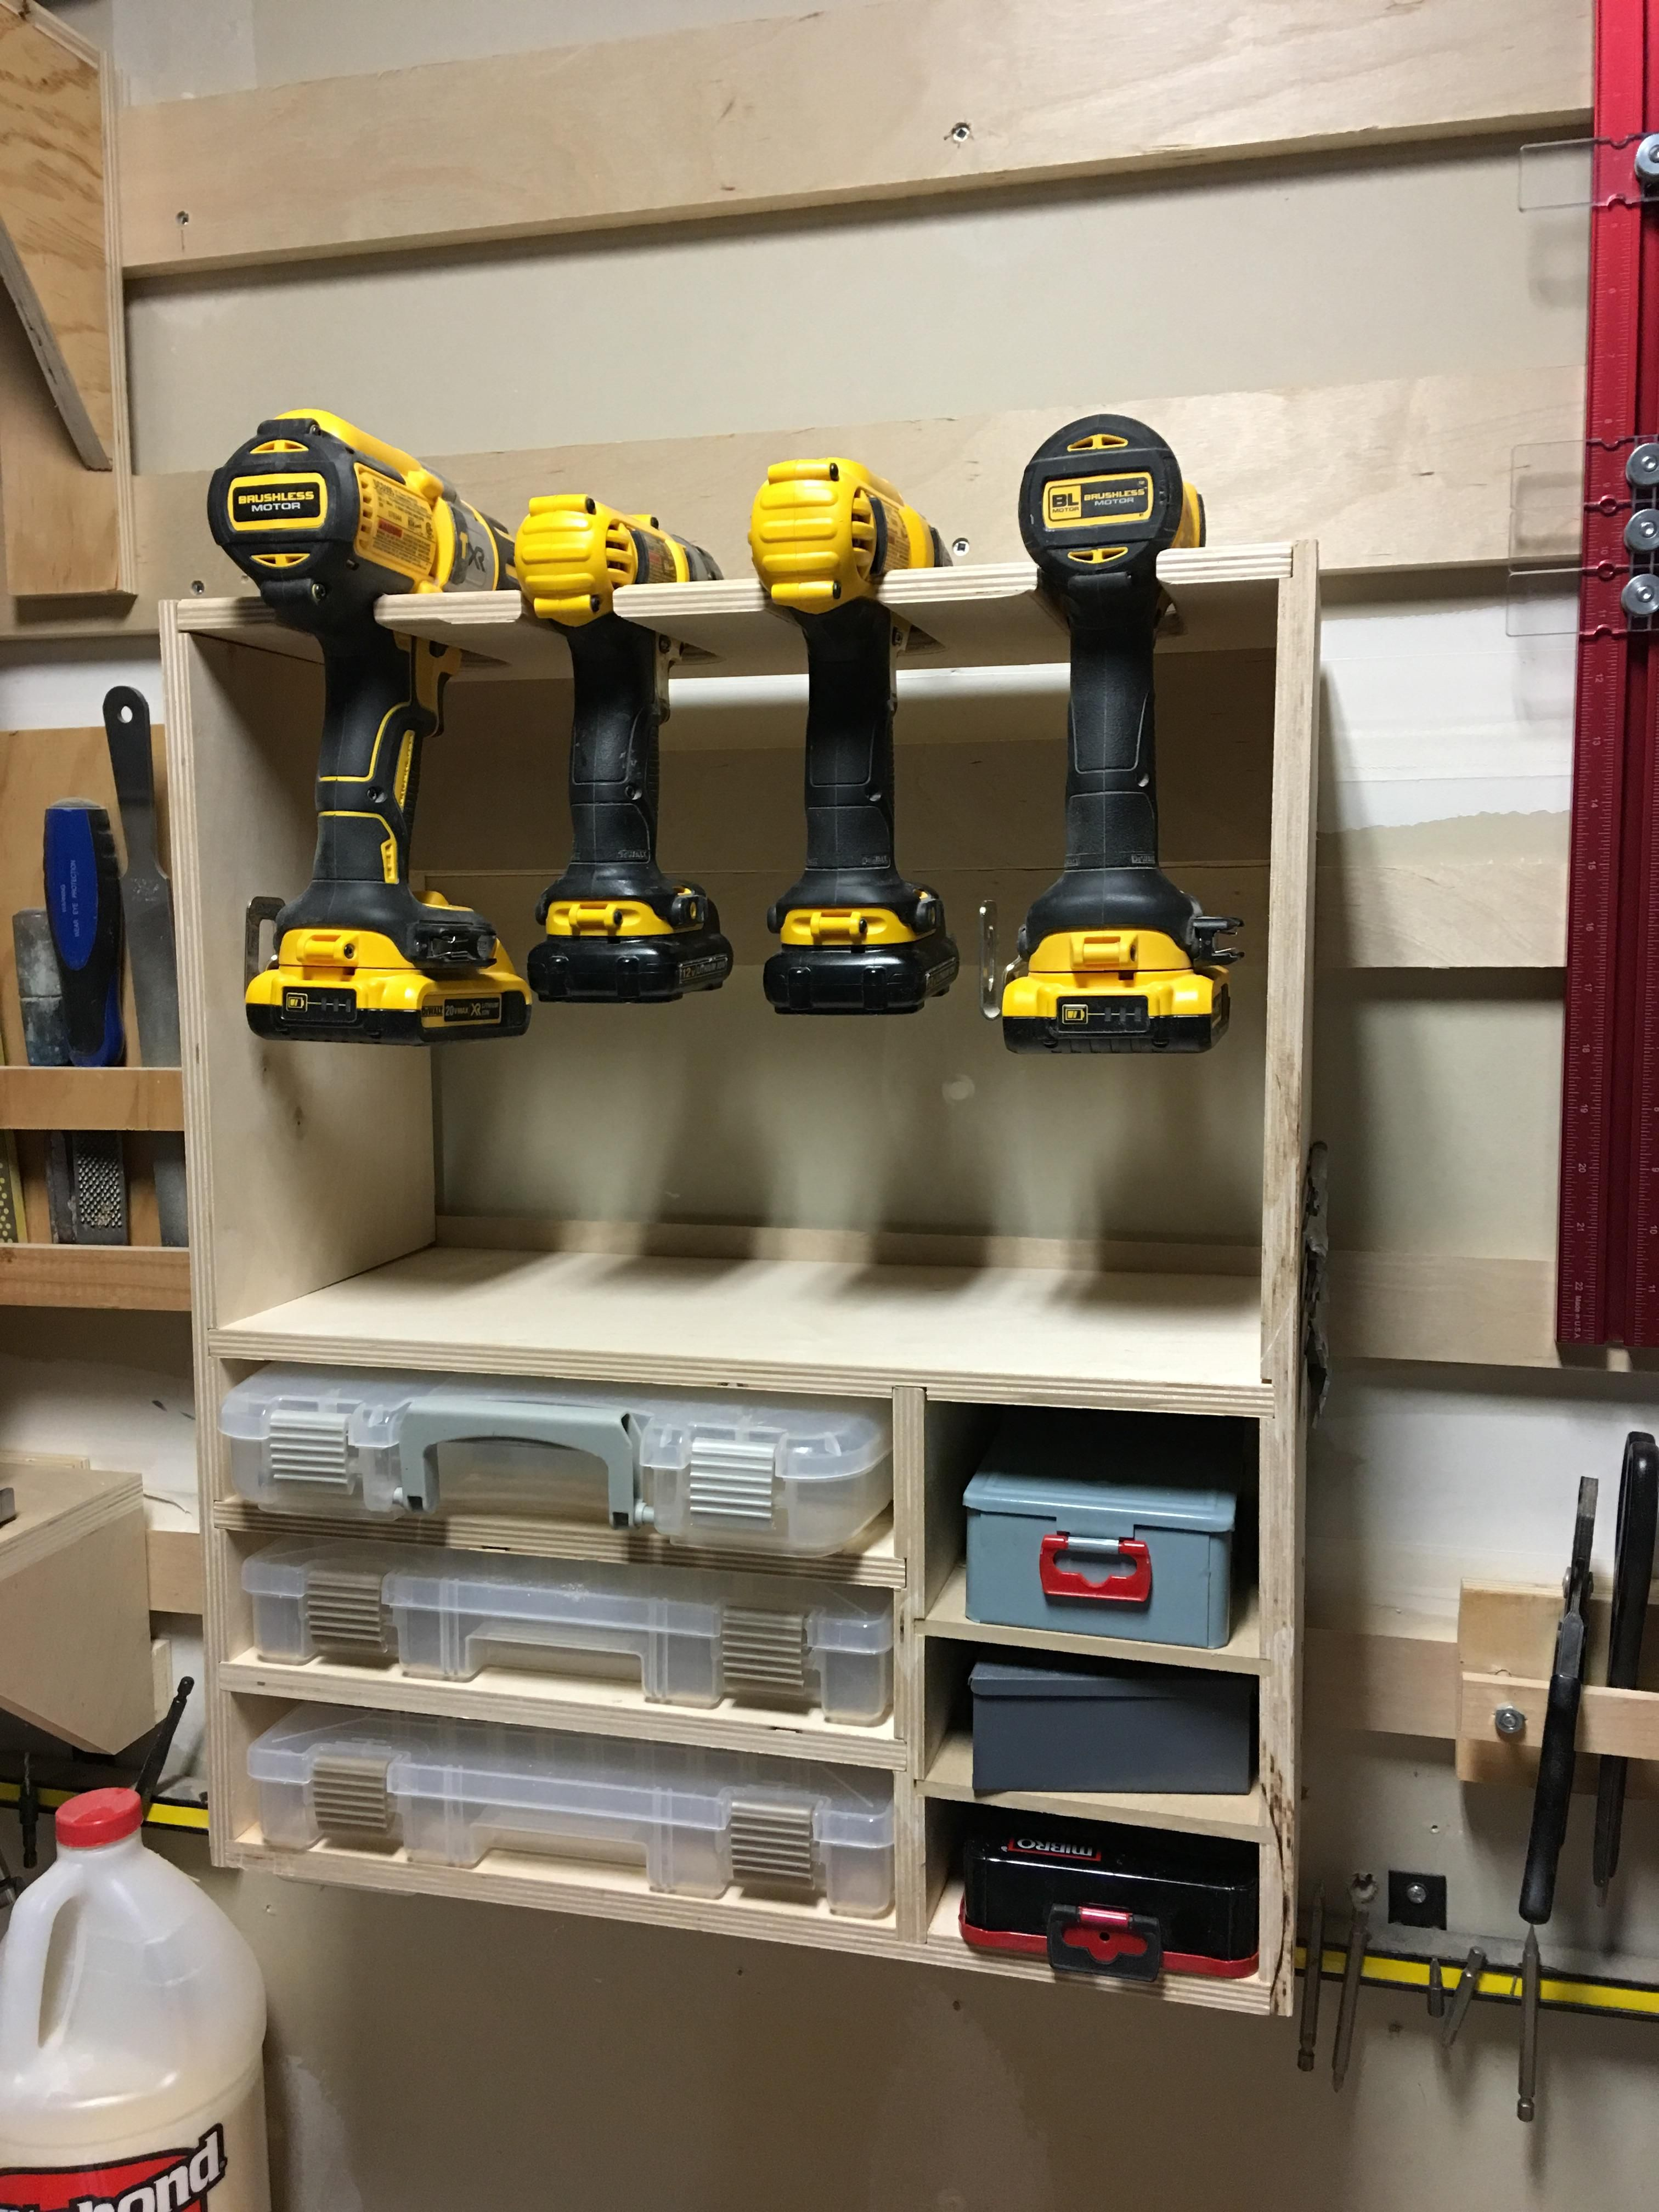 Rangements Outils Garage Replaced My Old Drill Rack With A New One For My French